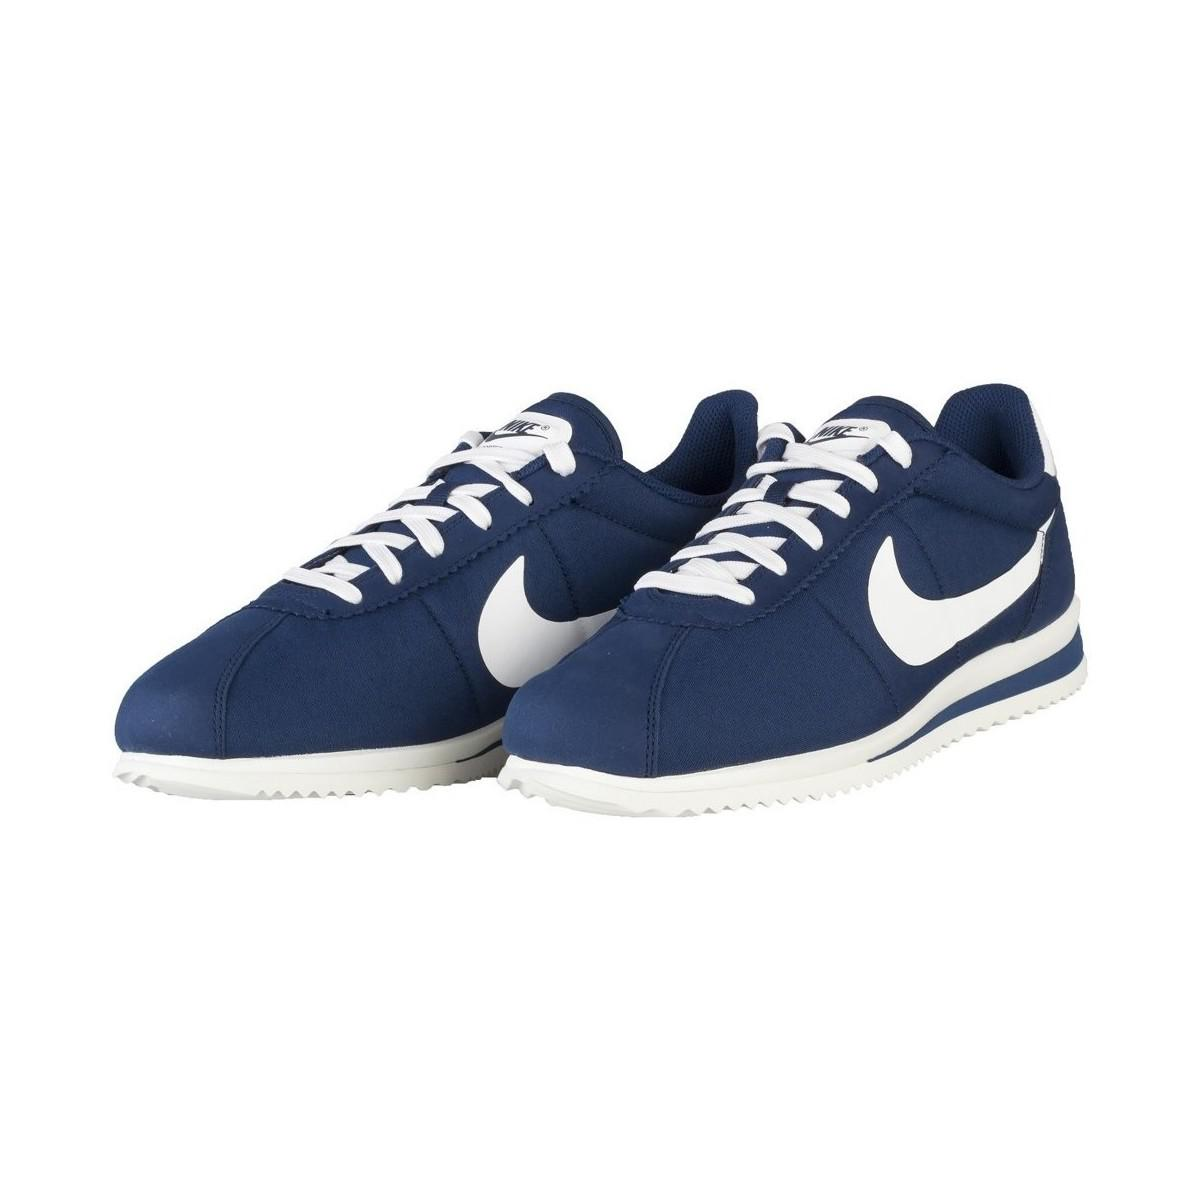 Nike Cortez Ultra Sd Gymnastics Shoes in Blue for Men